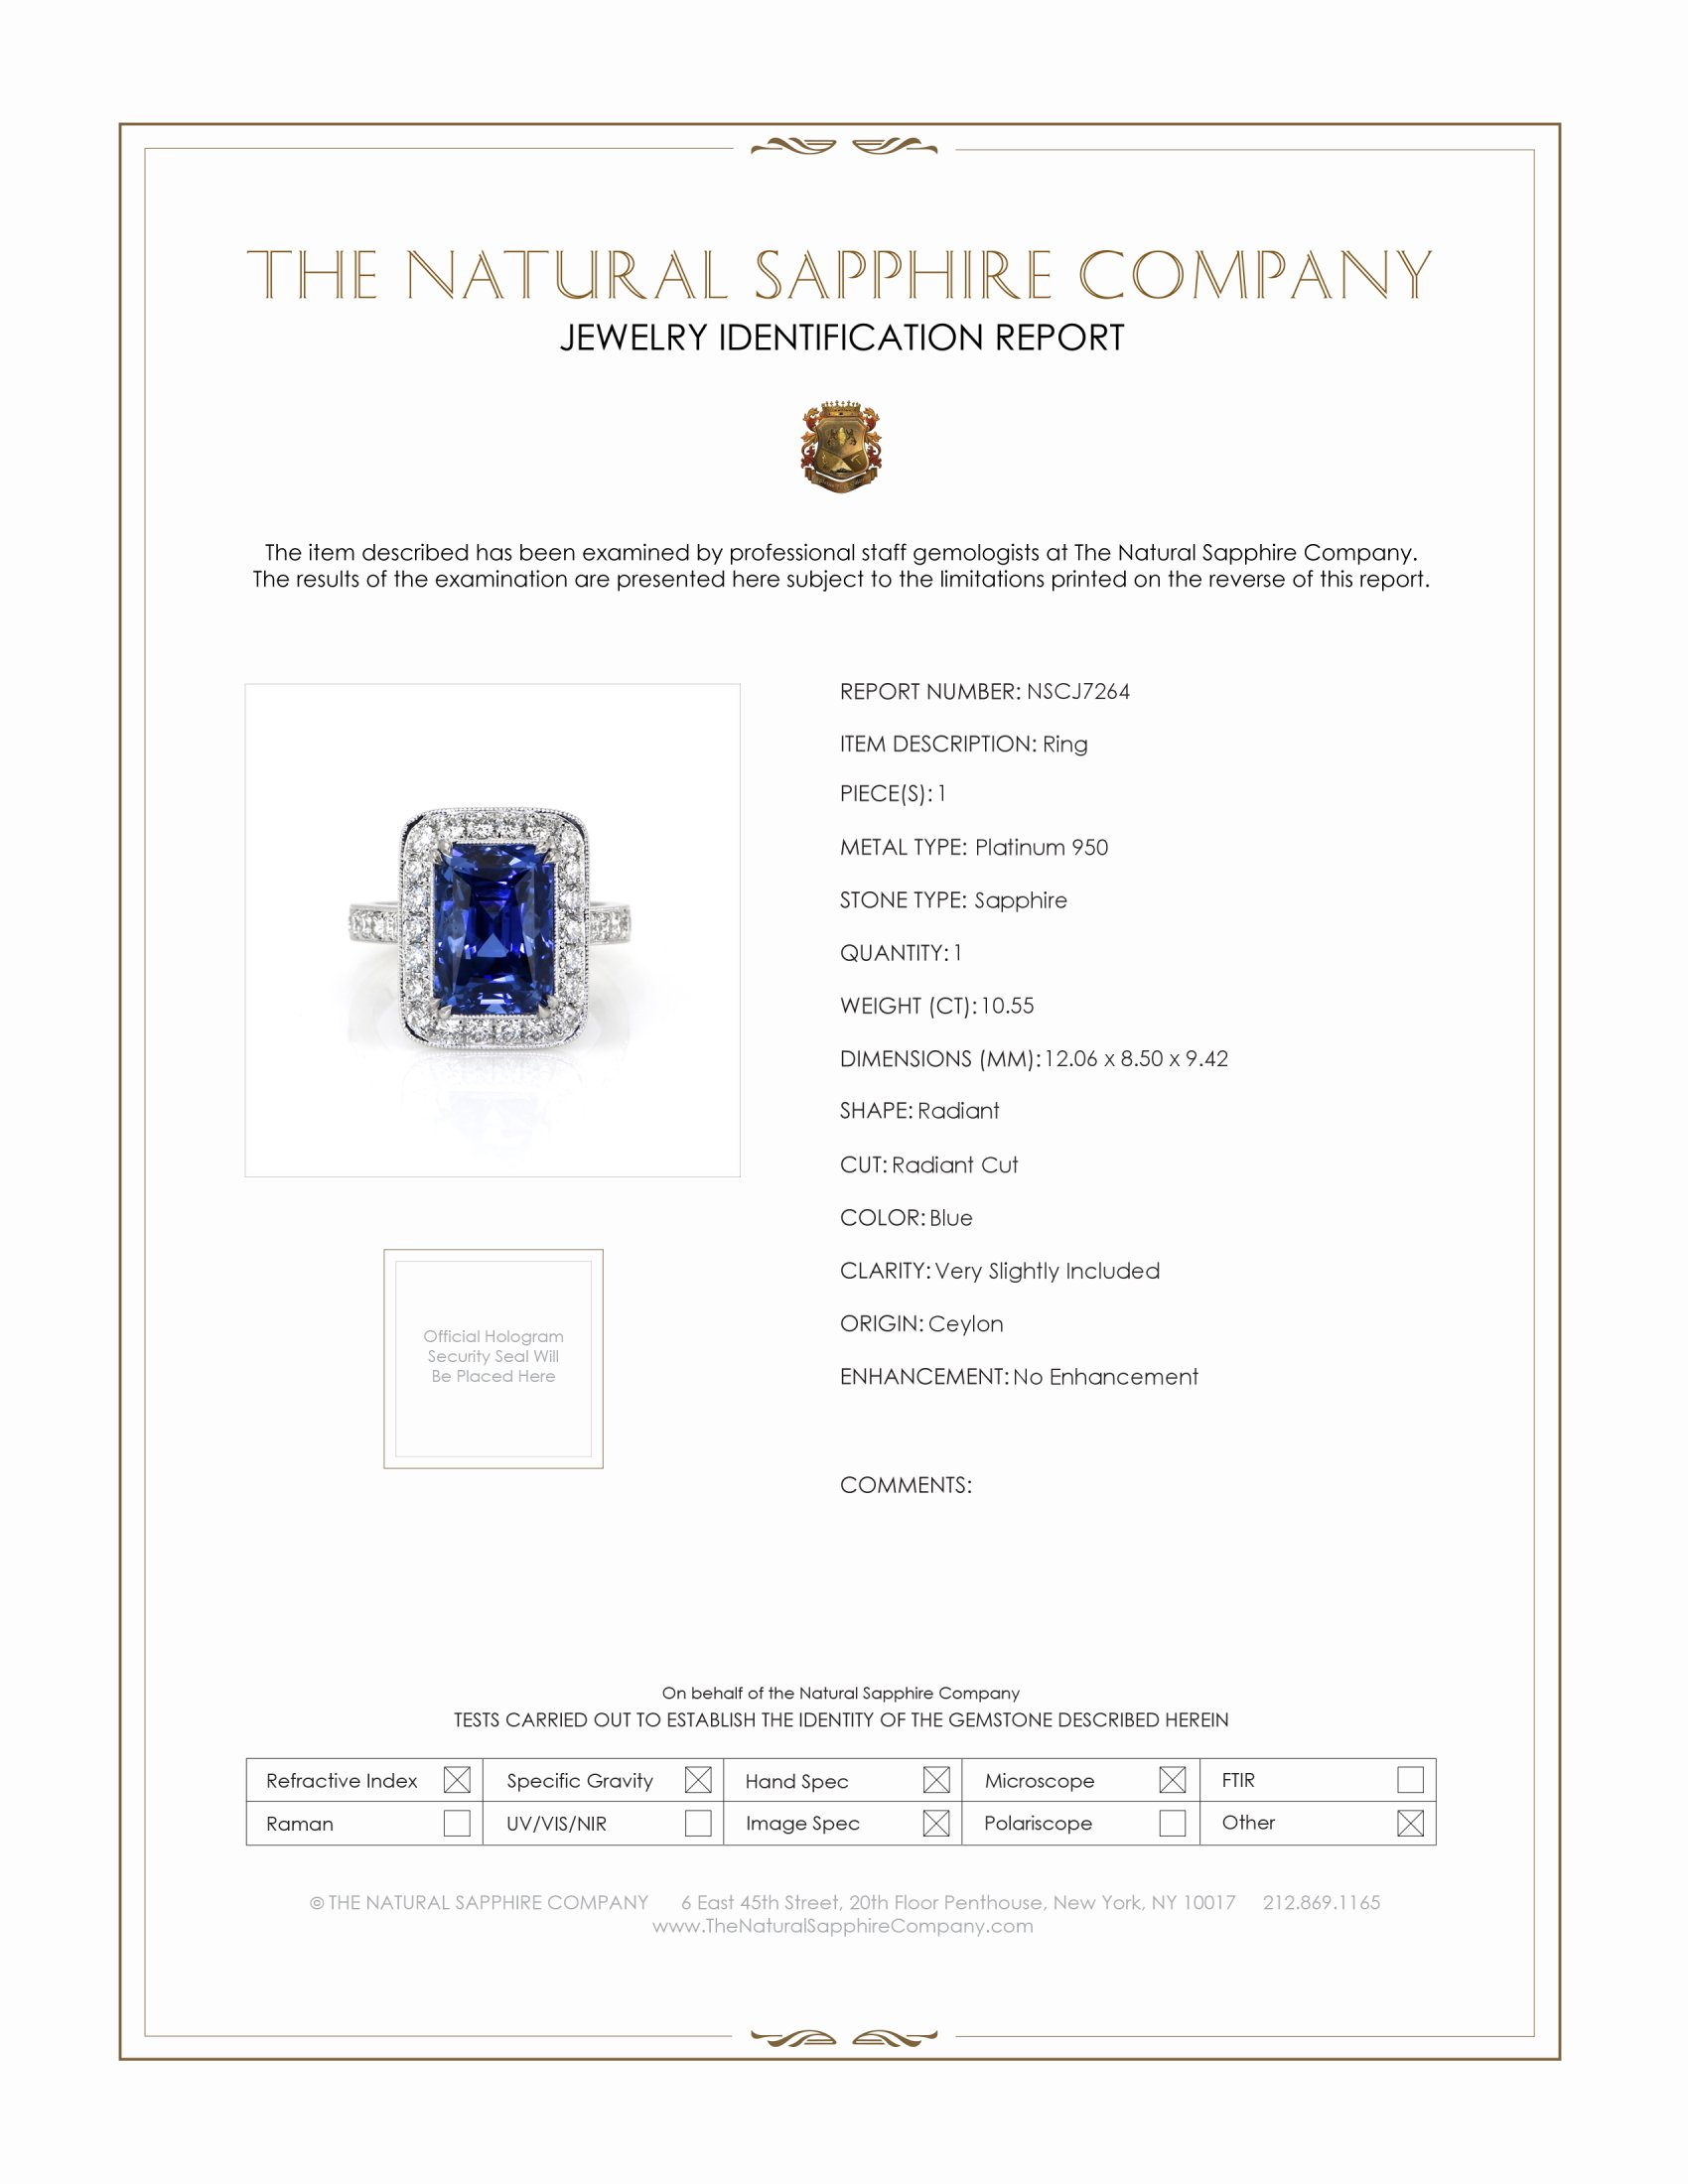 10.55ct Blue Sapphire Ring Certification